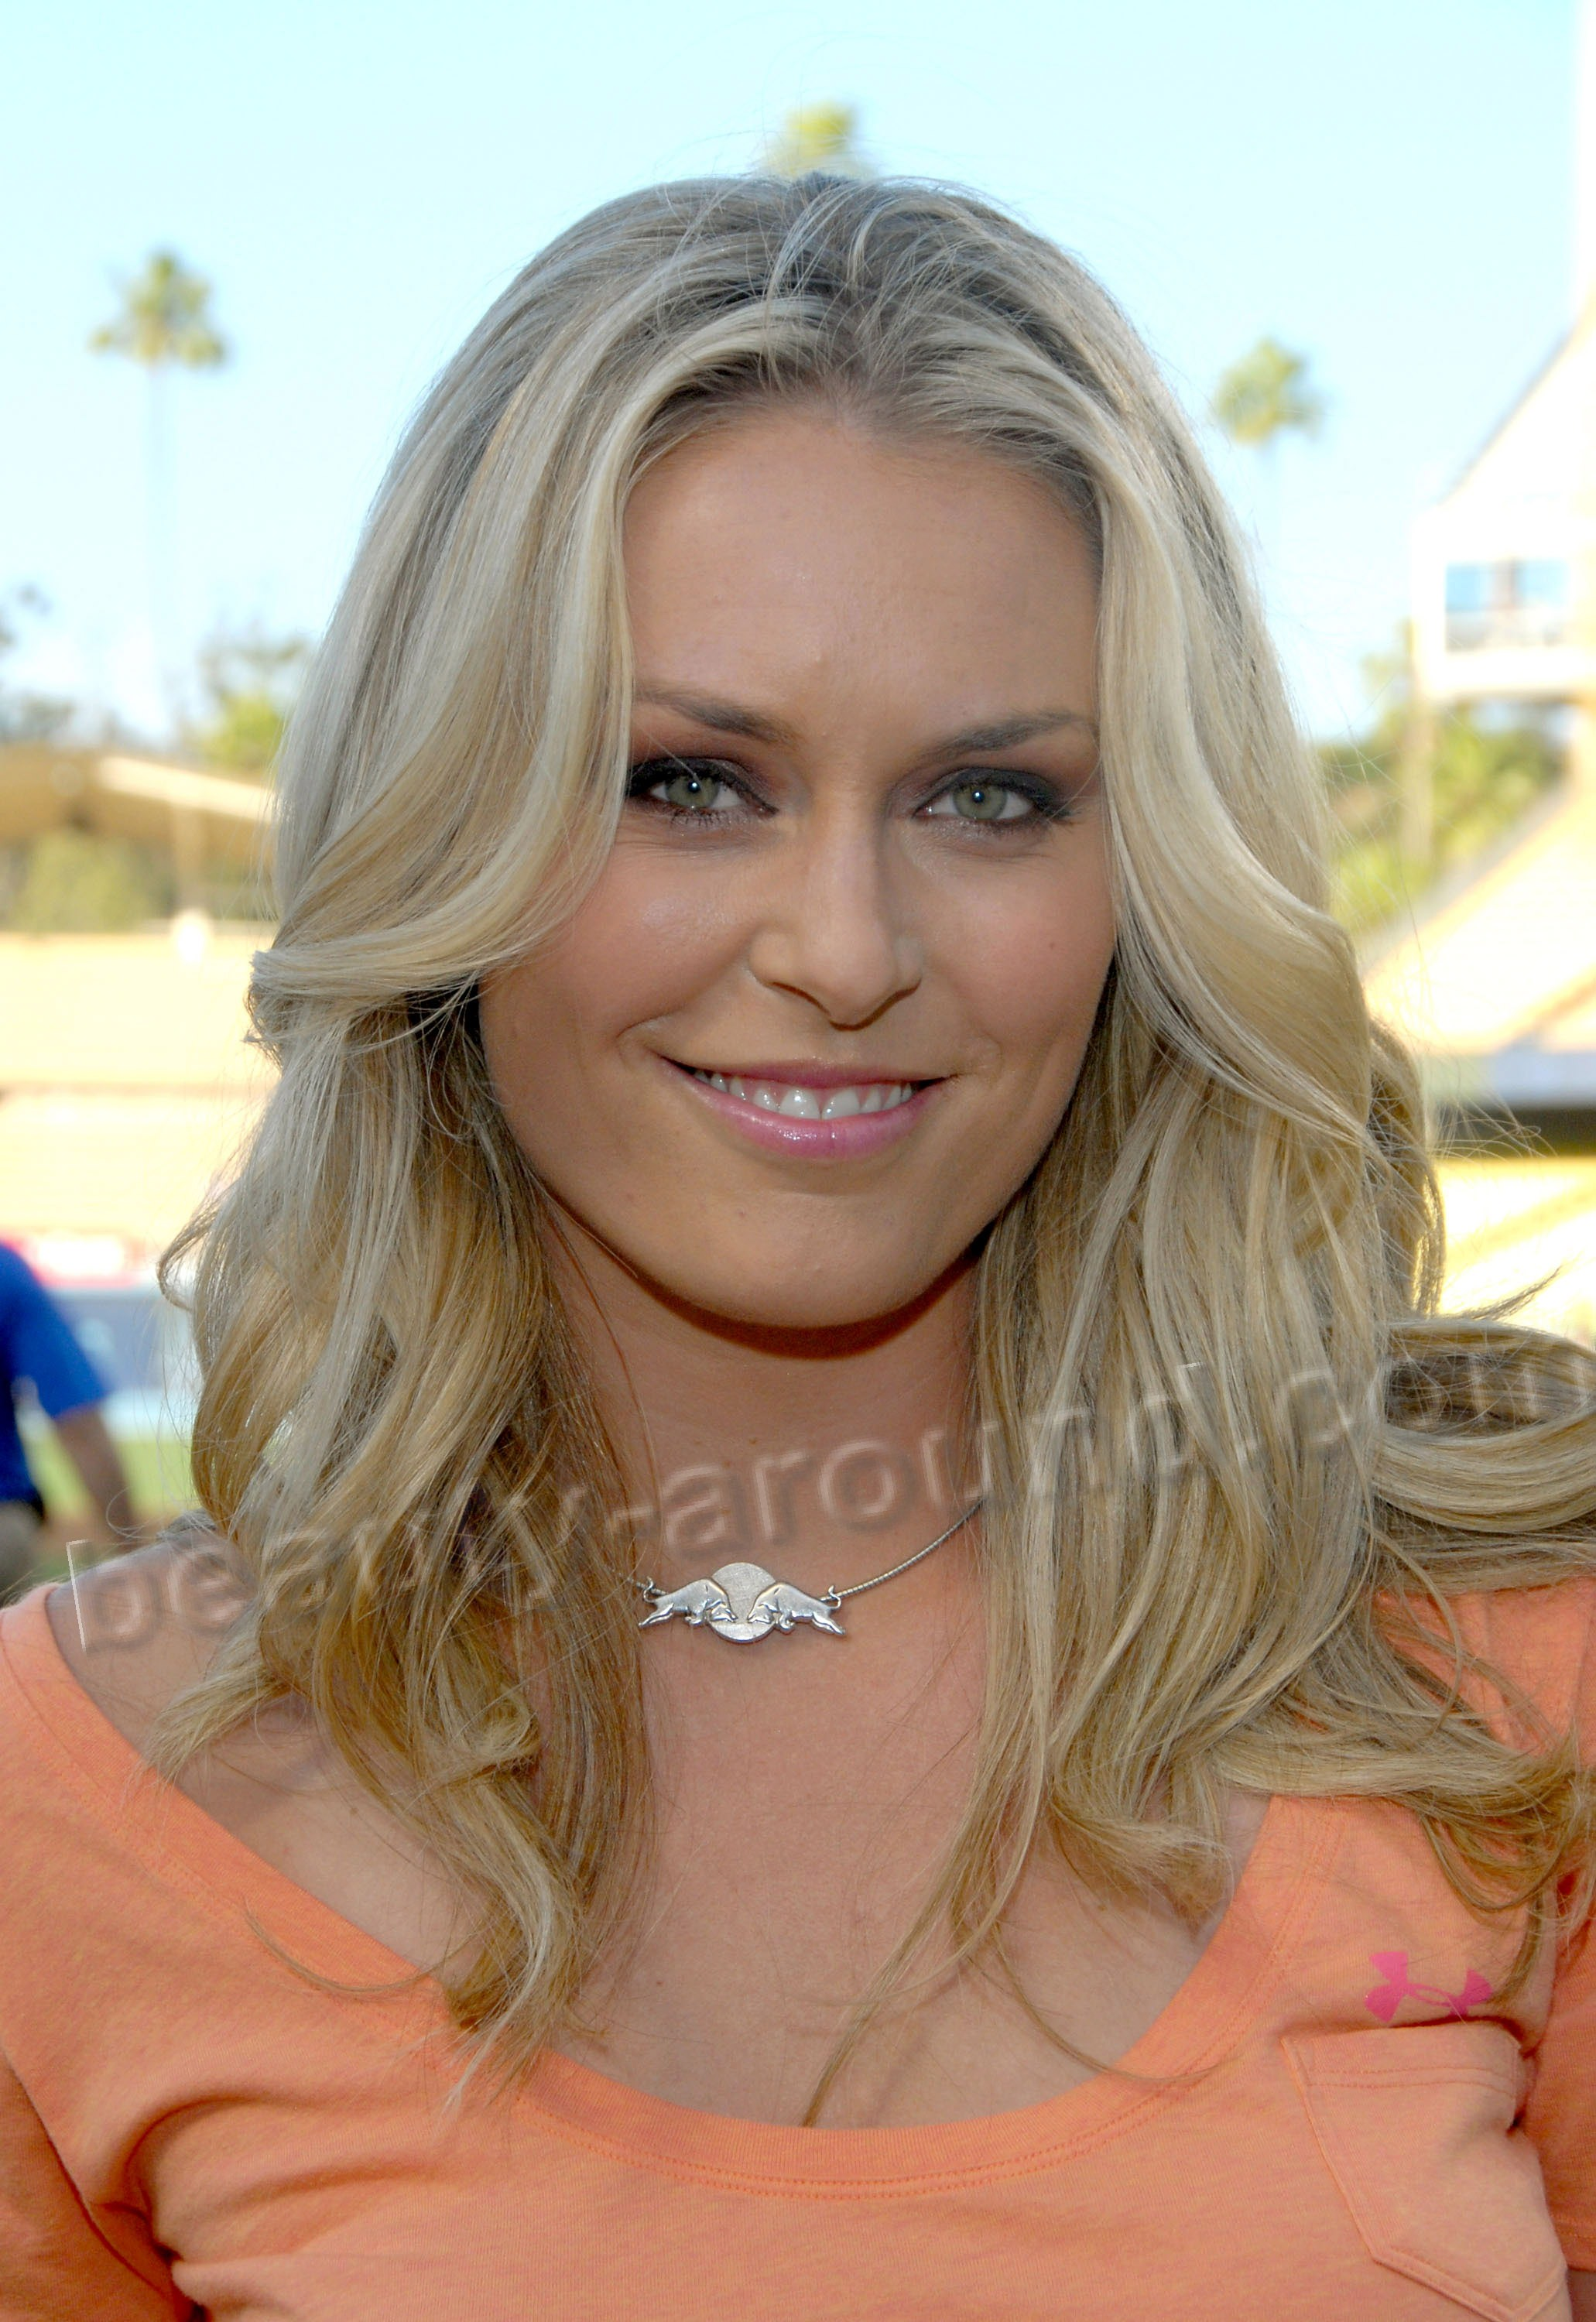 Lindsey Vonn the most beautiful female athletes photo